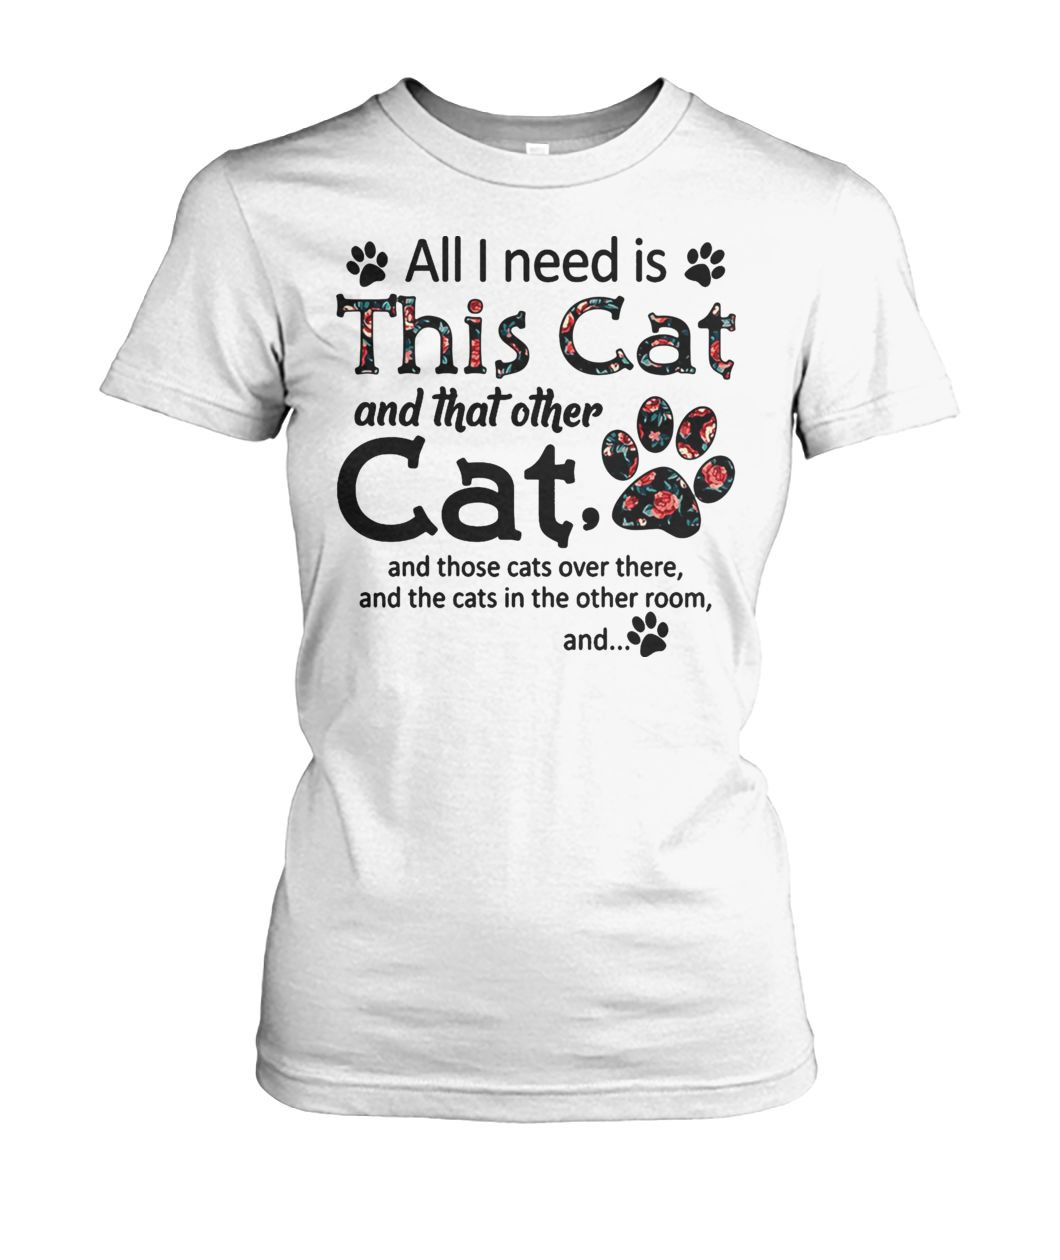 All I need is this cat and that other cat and those cats over there women's crew tee